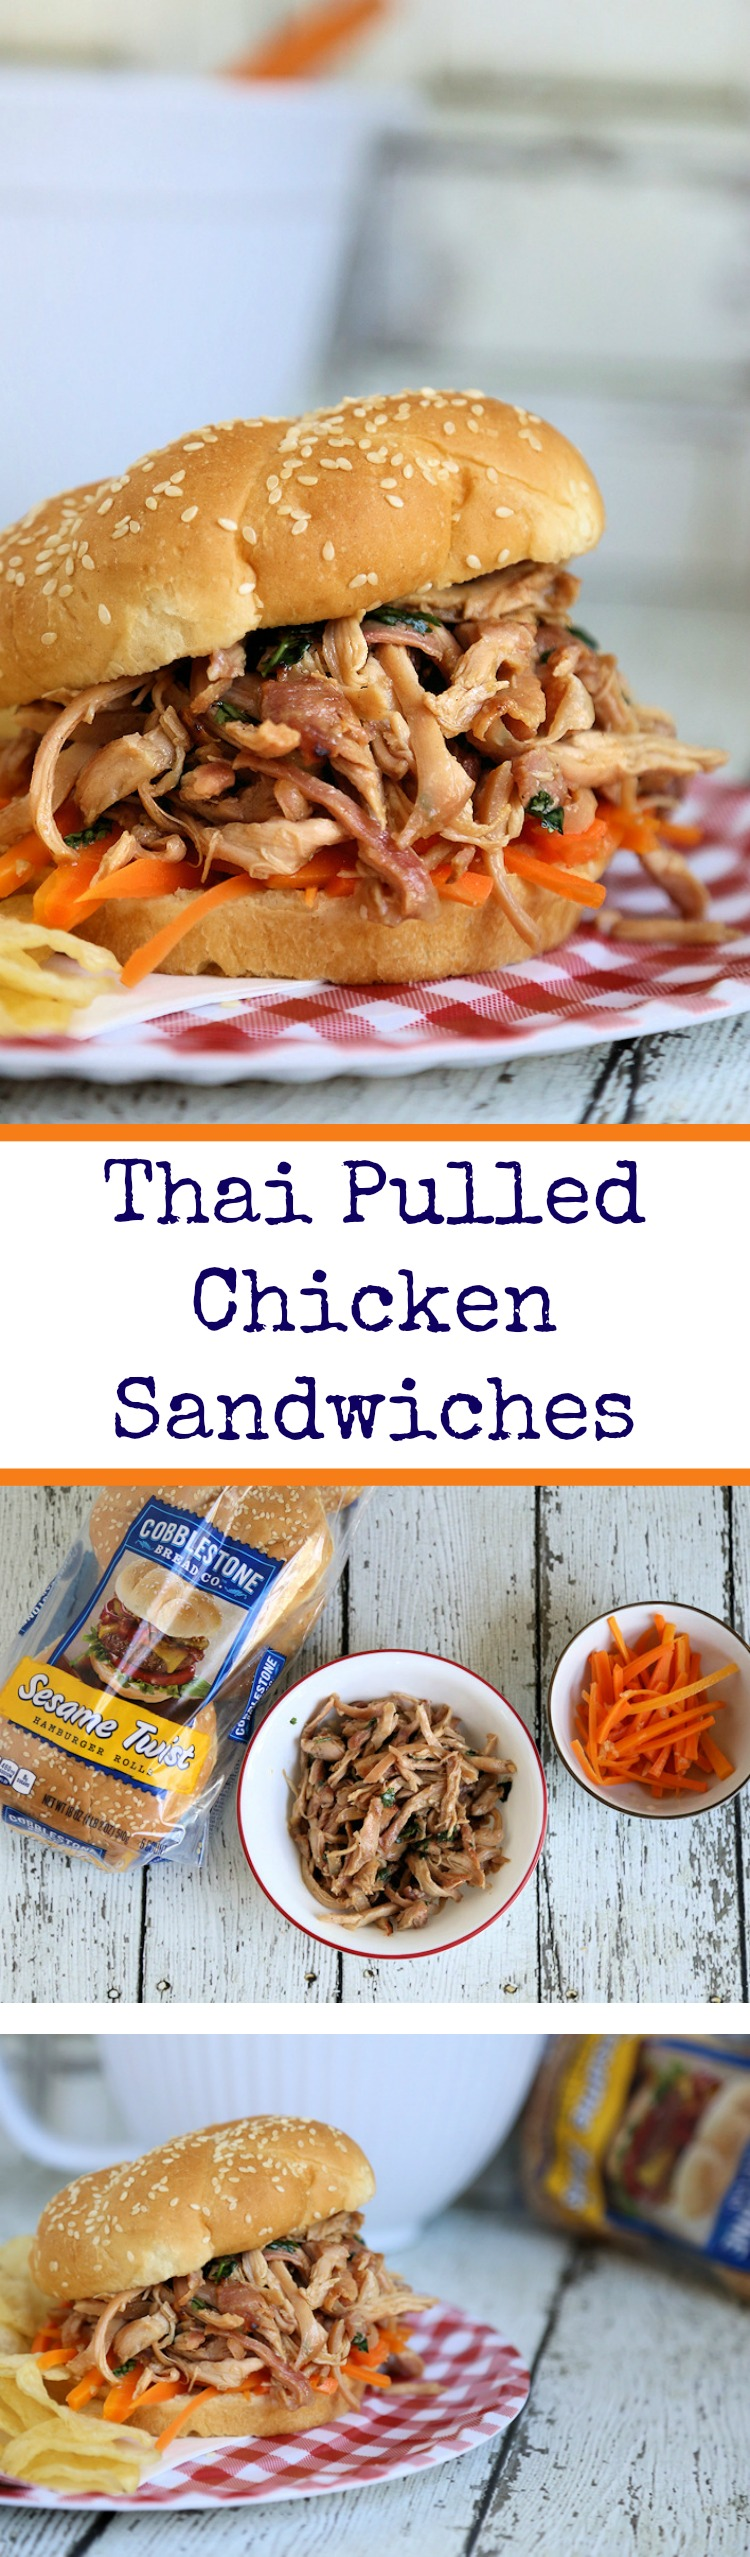 Thai Pulled Chicken Sandwiches